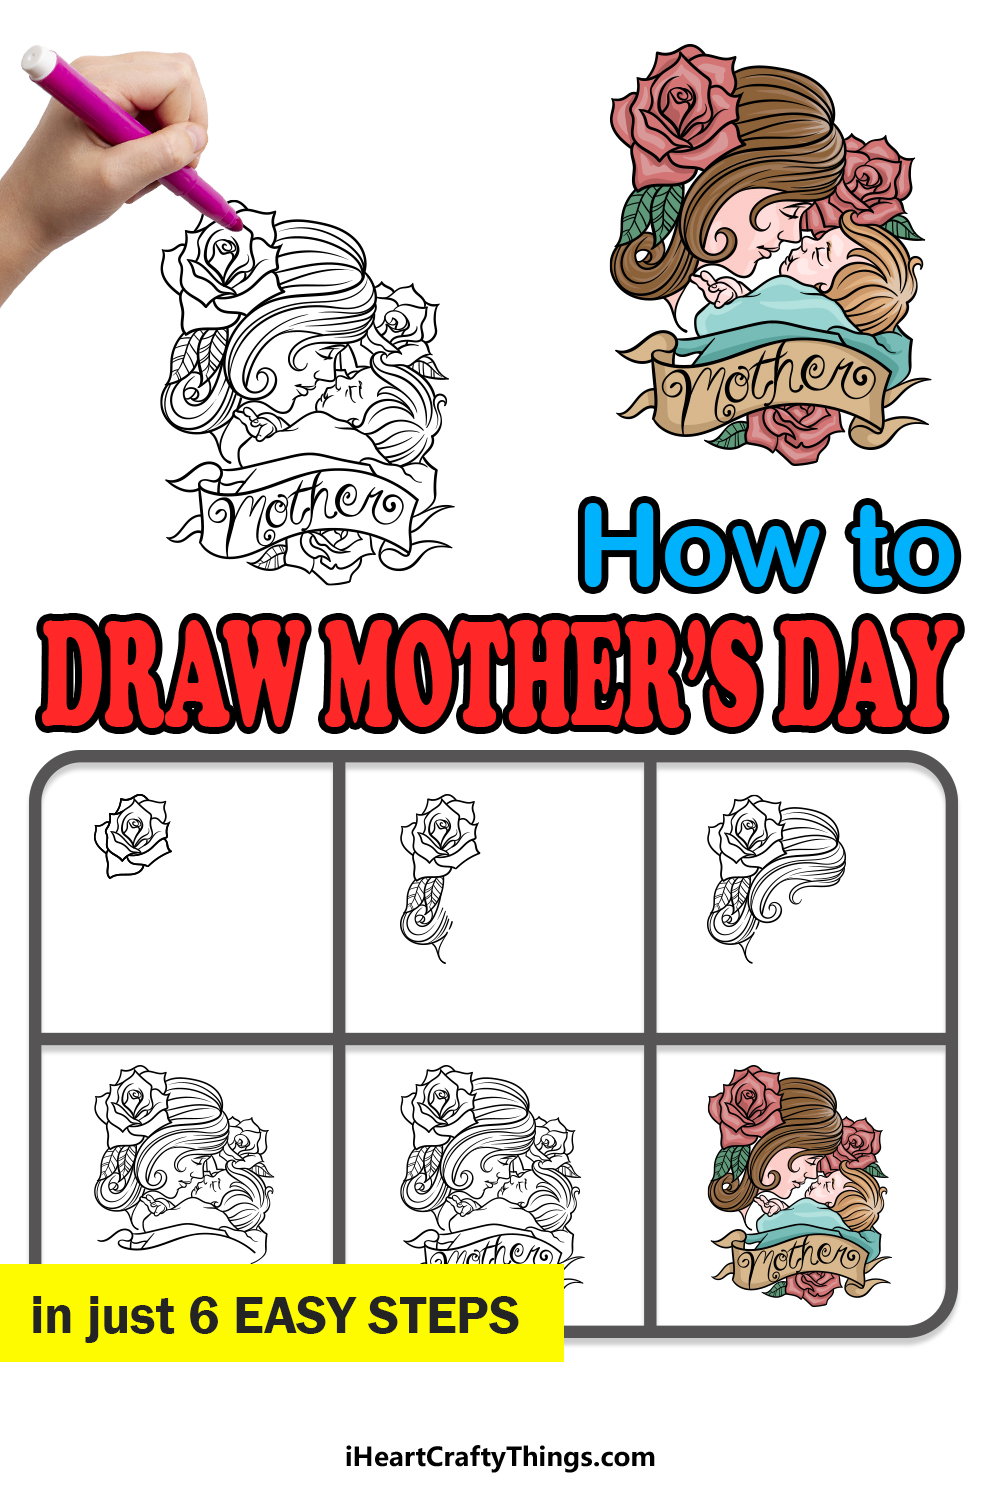 how to draw mother's day in 6 easy steps